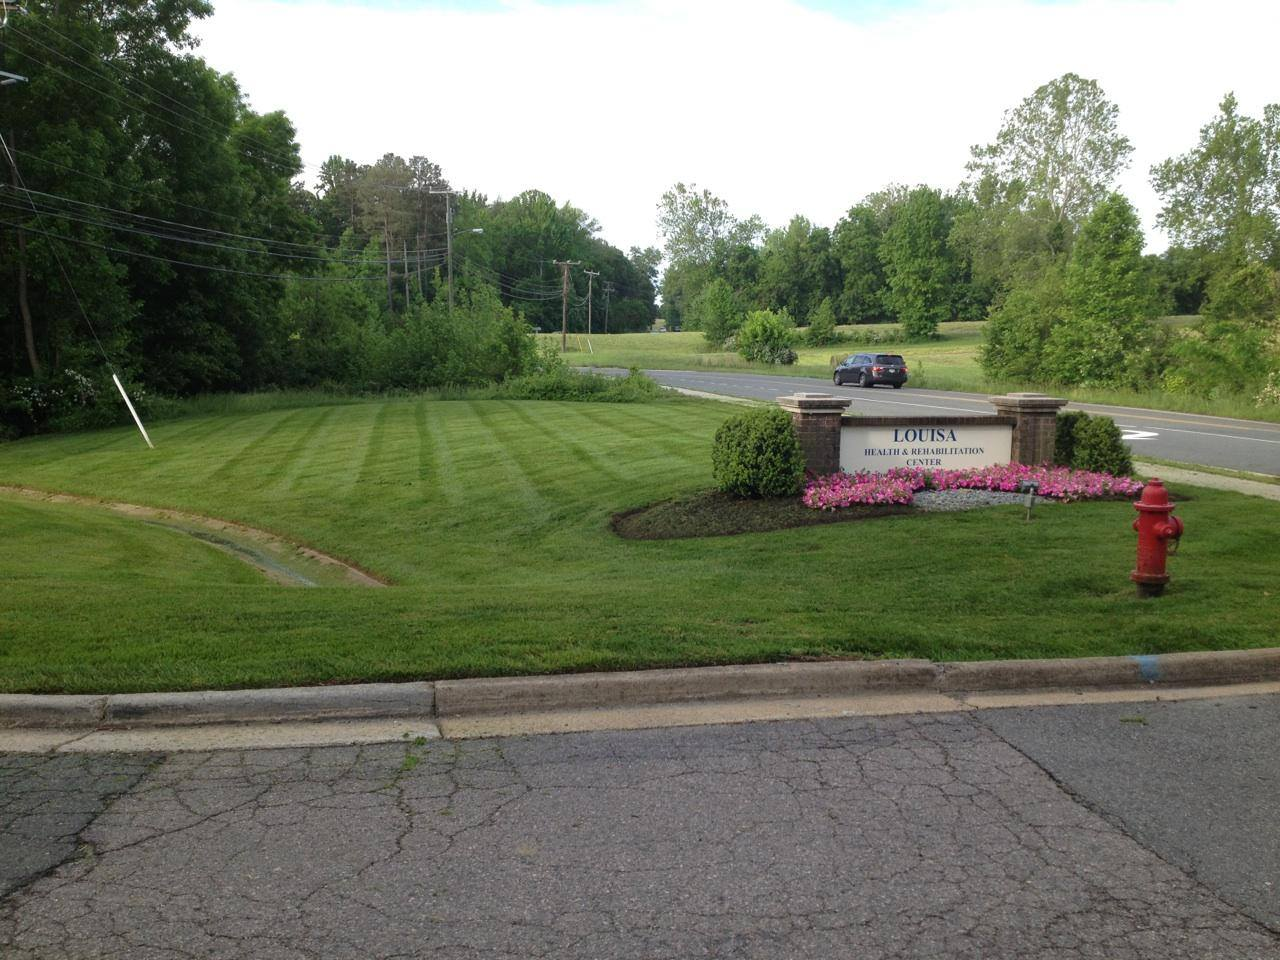 new landscape with mowed lawn and drainage and a business sign for Louisa Health and Rehabilitation Center surrounded by shrubs and flowers